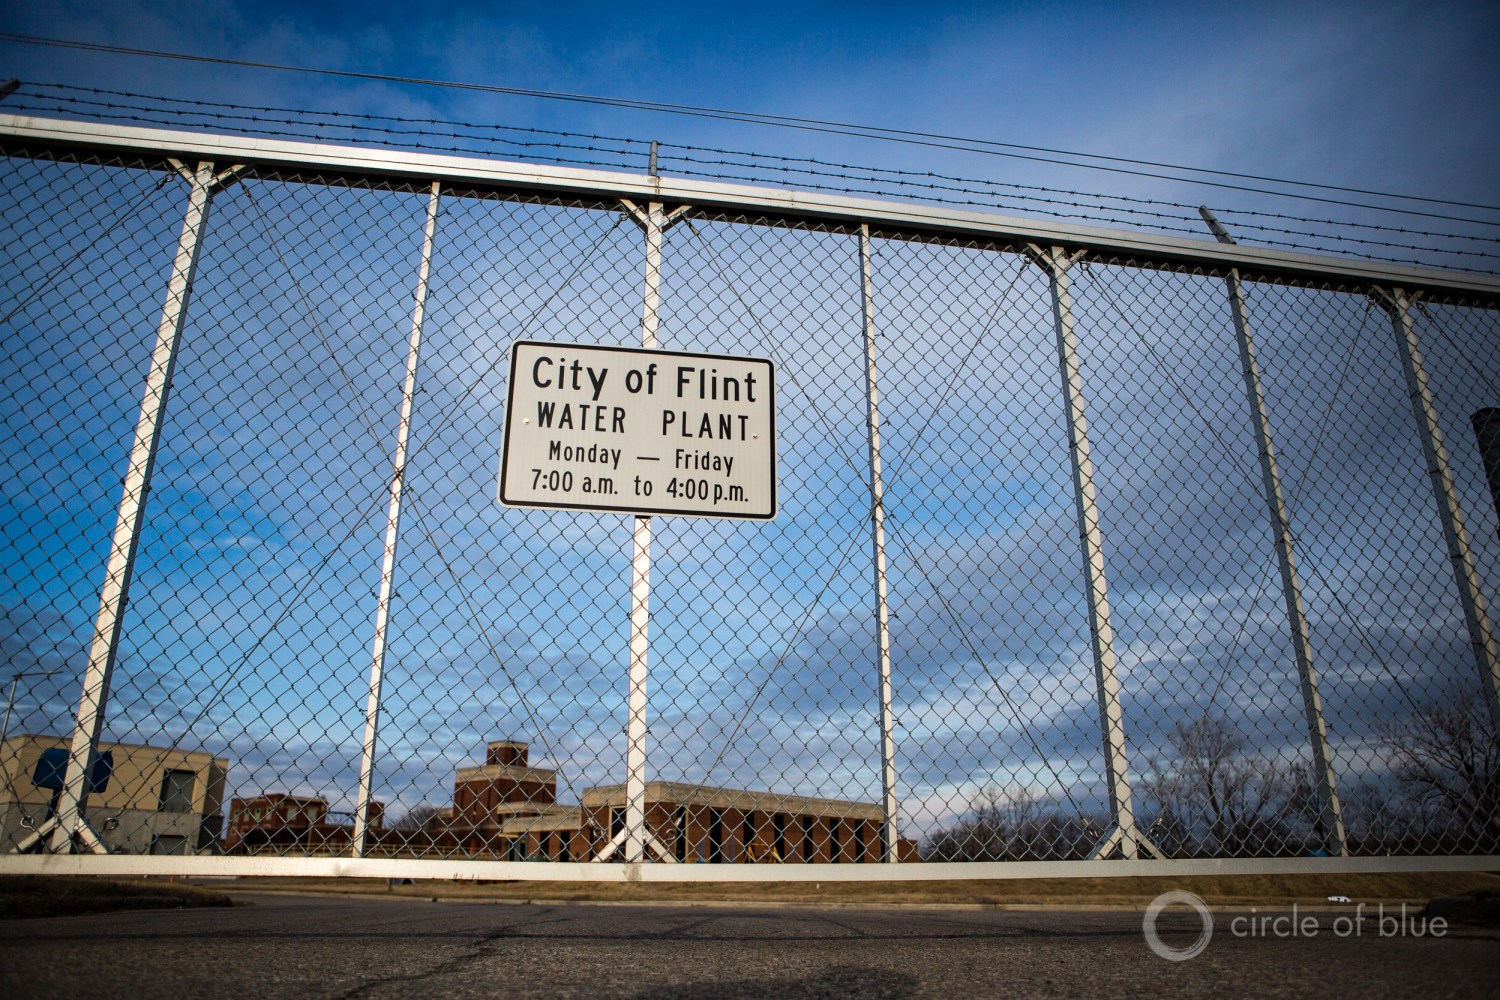 Michigan Attorney General Bill Schuette has filed criminal charges against 15 local and state officials and water system operators in his office's investigation of the Flint water scandal. Photo © J. Carl Ganter / Circle of Blue